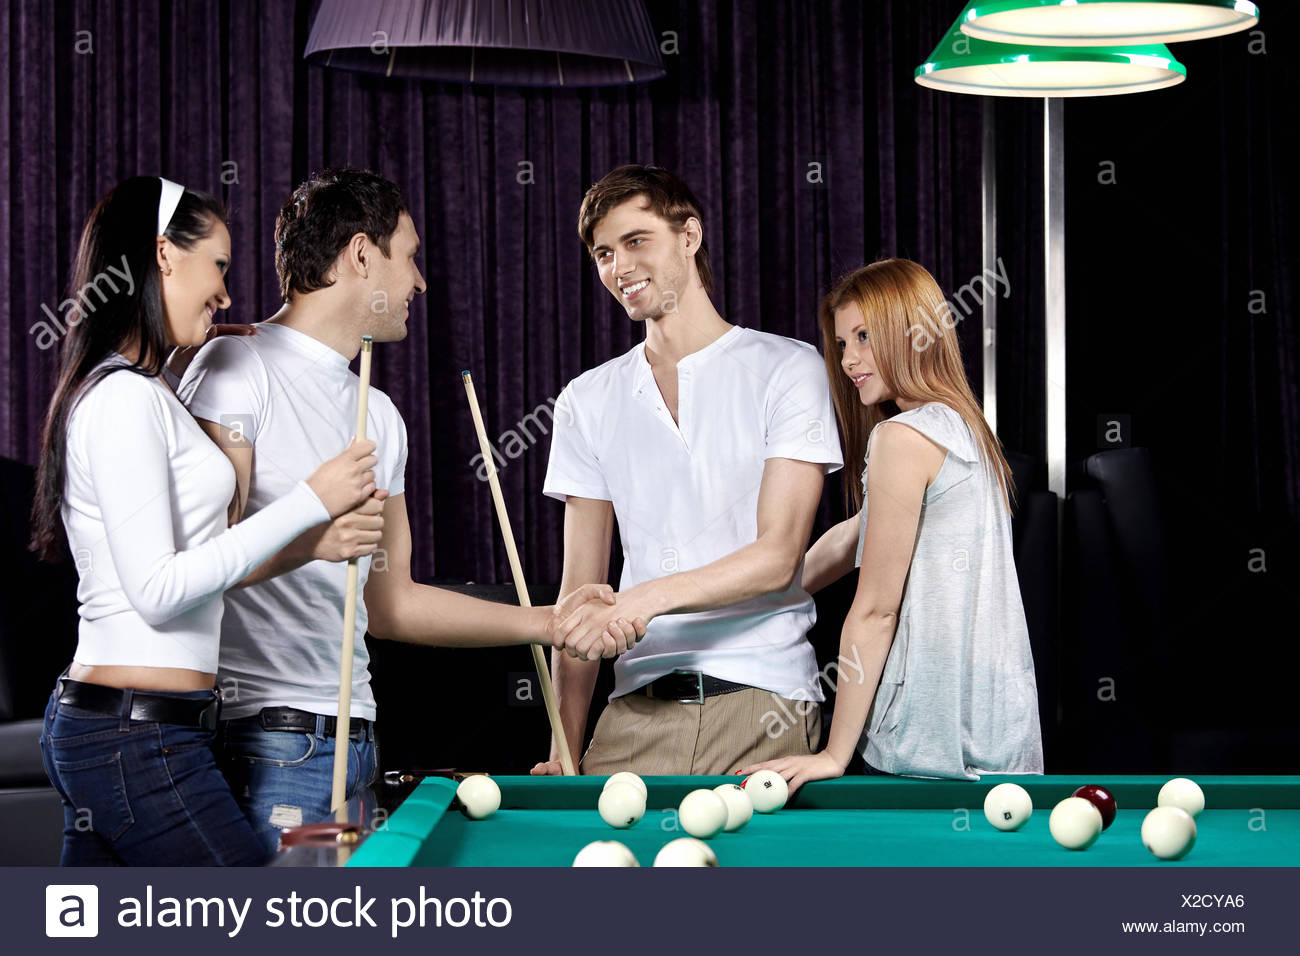 Young people with cue at a billiard table - Stock Image